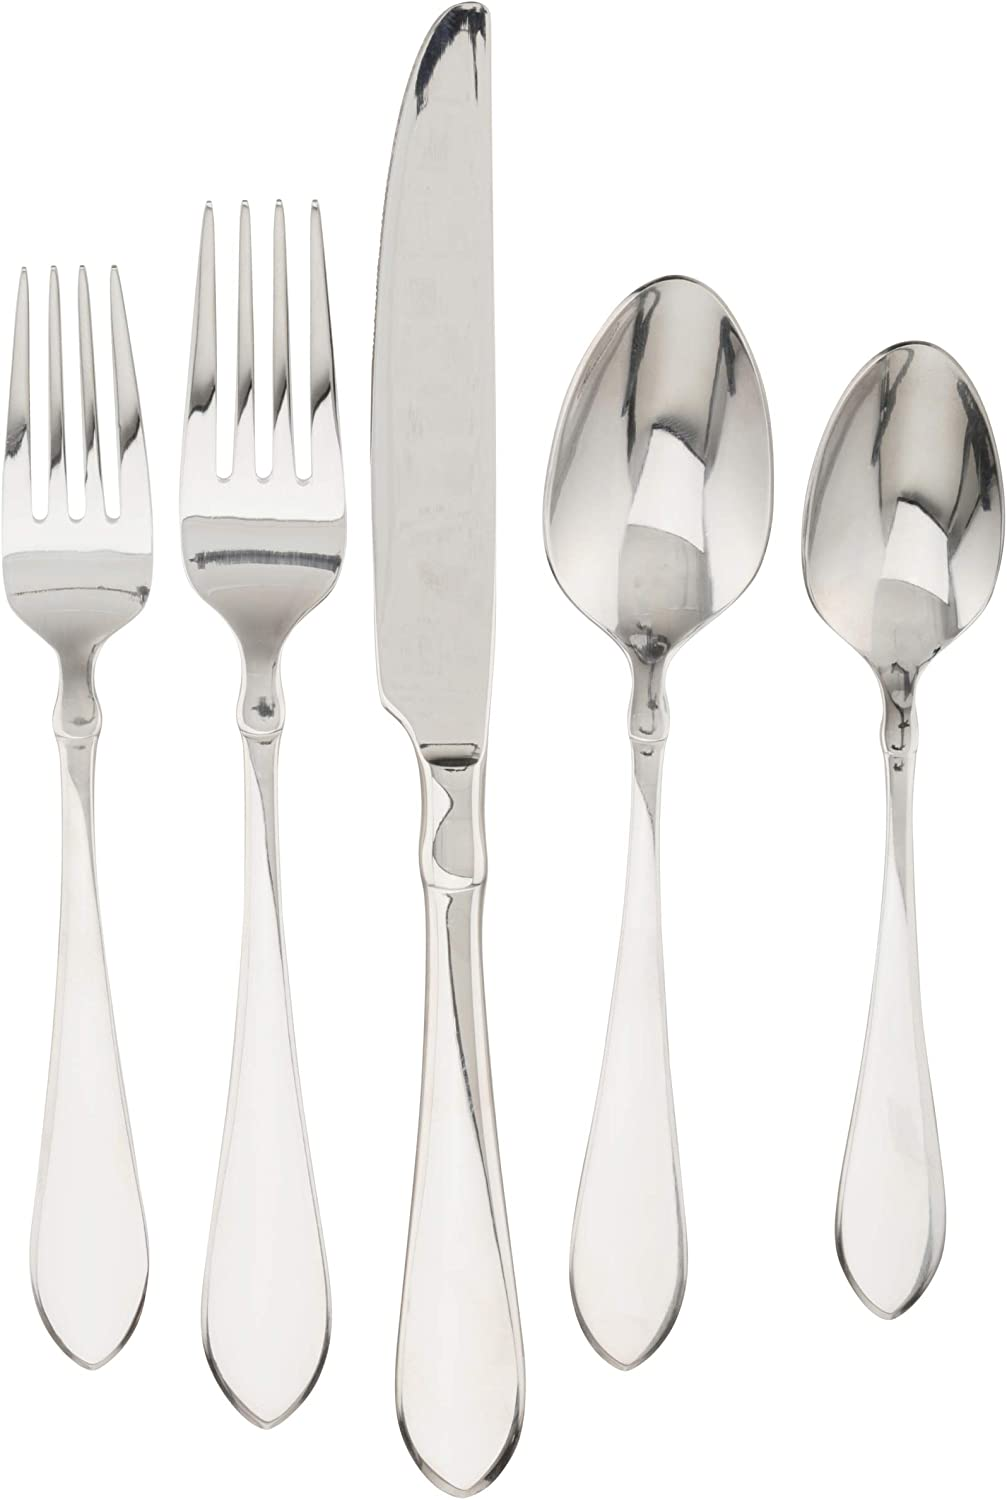 Oneida H048020A Flatware greenex - 20 Piece